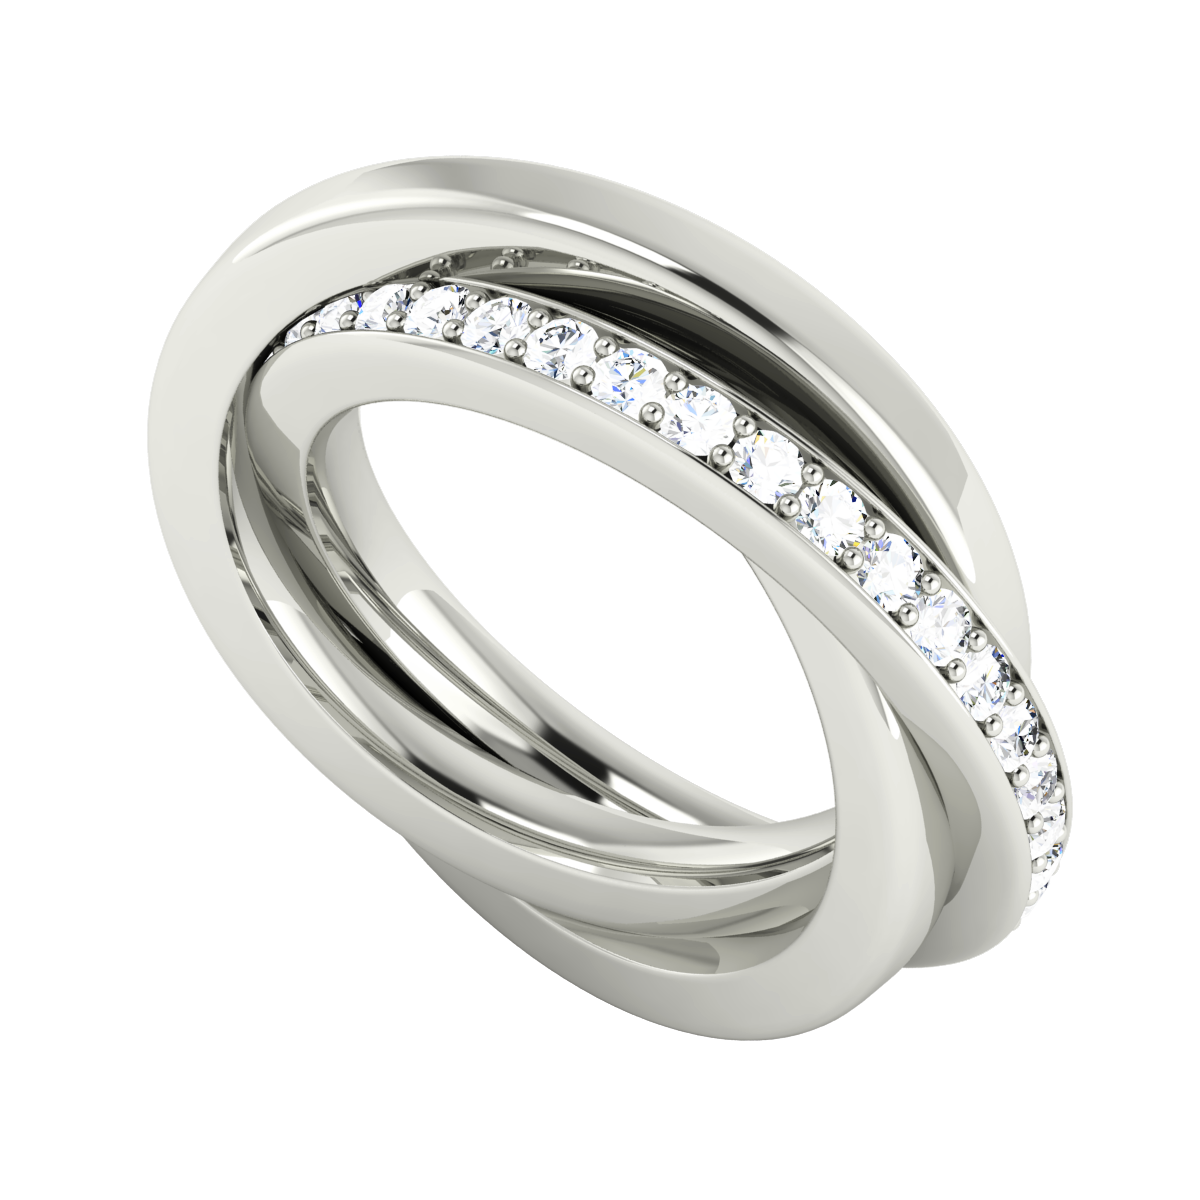 Diamond Russian Wedding Ring 9ct White Gold Russian wedding